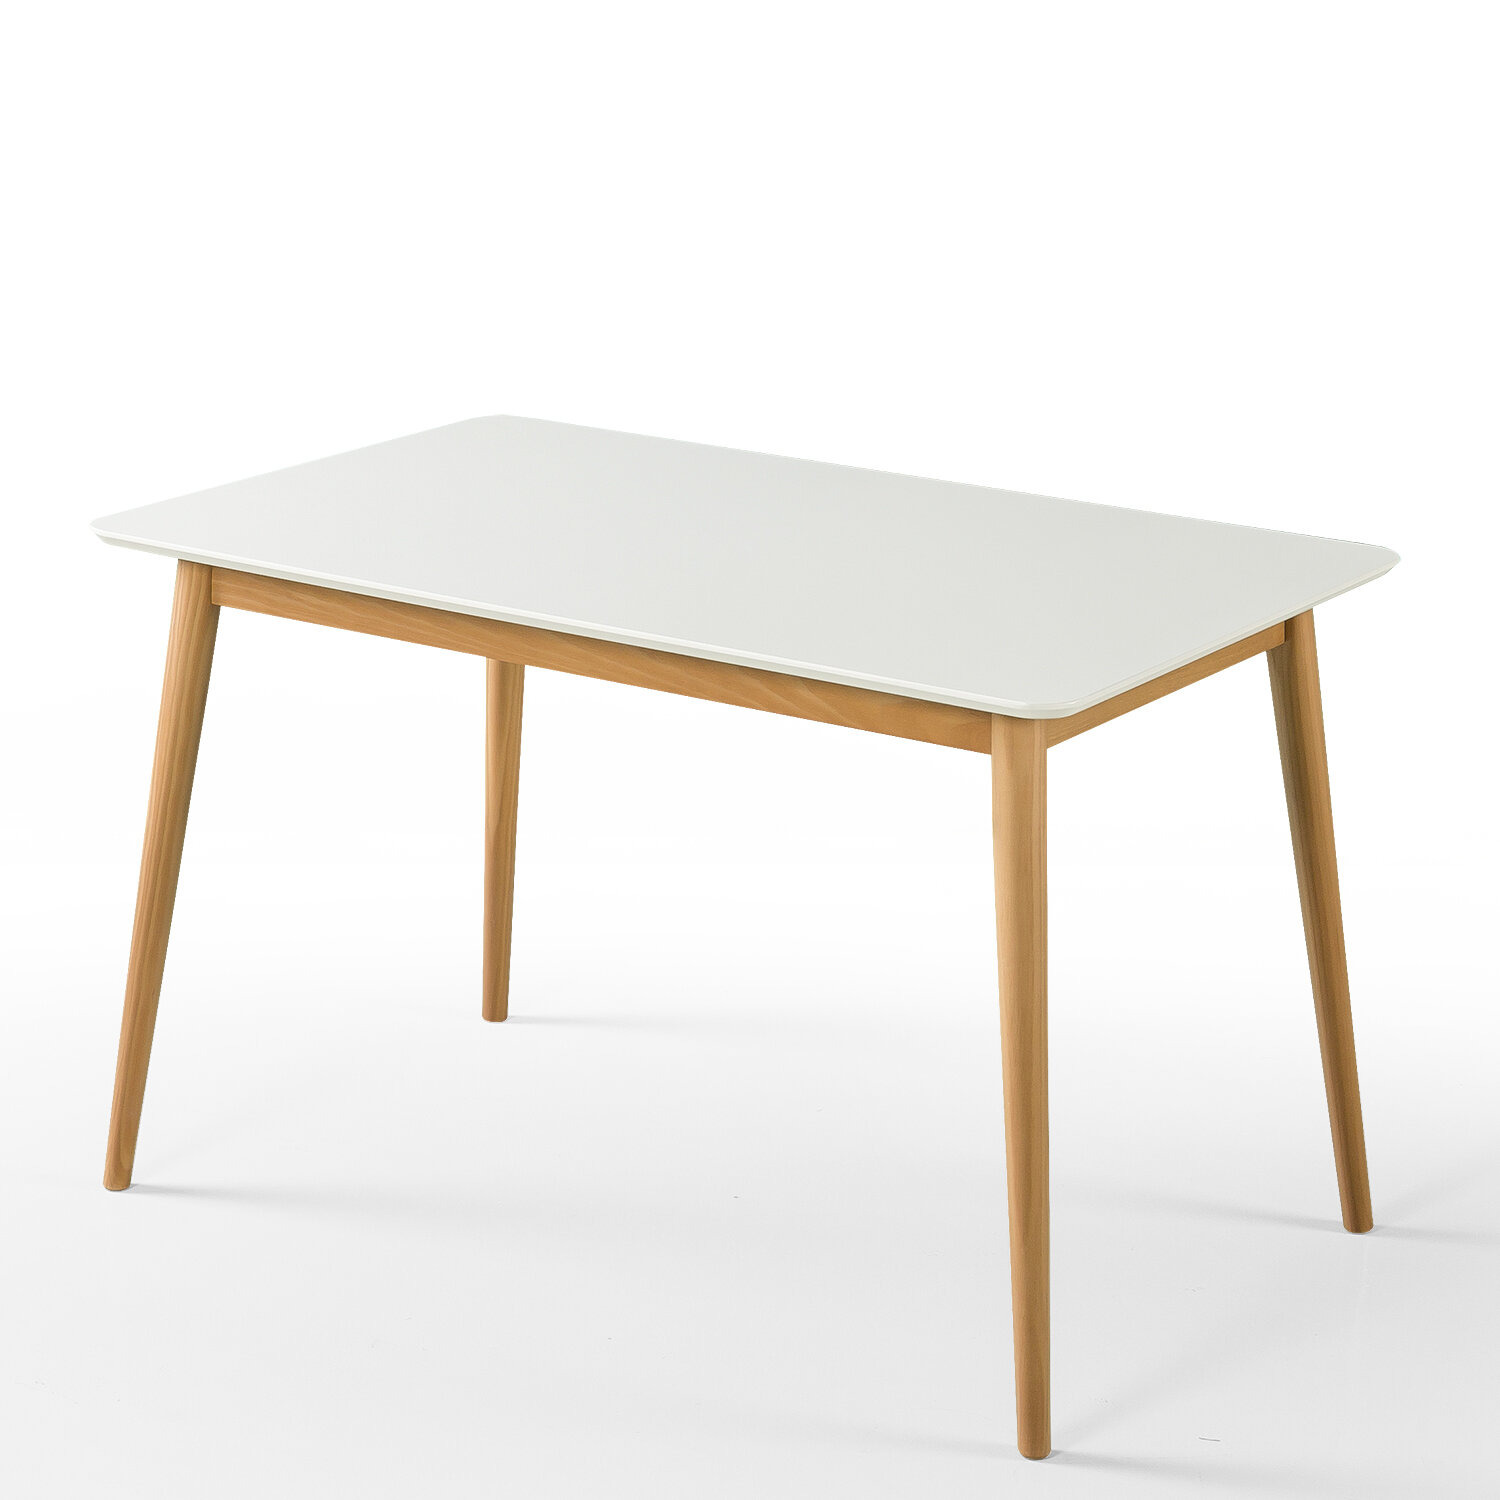 Wayfair Mid Century Coffee Table.Details About George Oliver Bedwell Mid Century Wood Dining Table